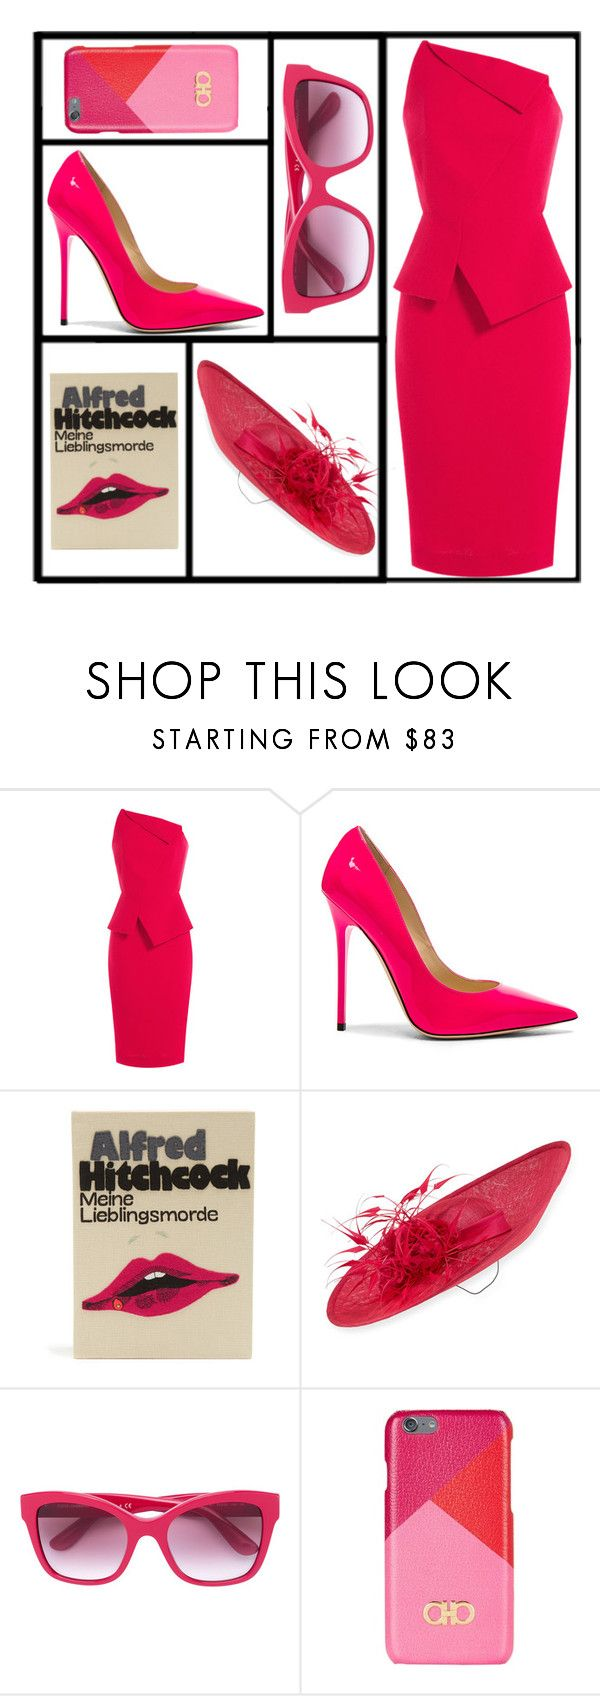 """""""Eccentric Business Woman"""" by jazzola-19 ❤ liked on Polyvore featuring Roland Mouret, Jimmy Choo, Olympia Le-Tan, Rachel Trevor-Morgan, Dolce&Gabbana and Salvatore Ferragamo"""